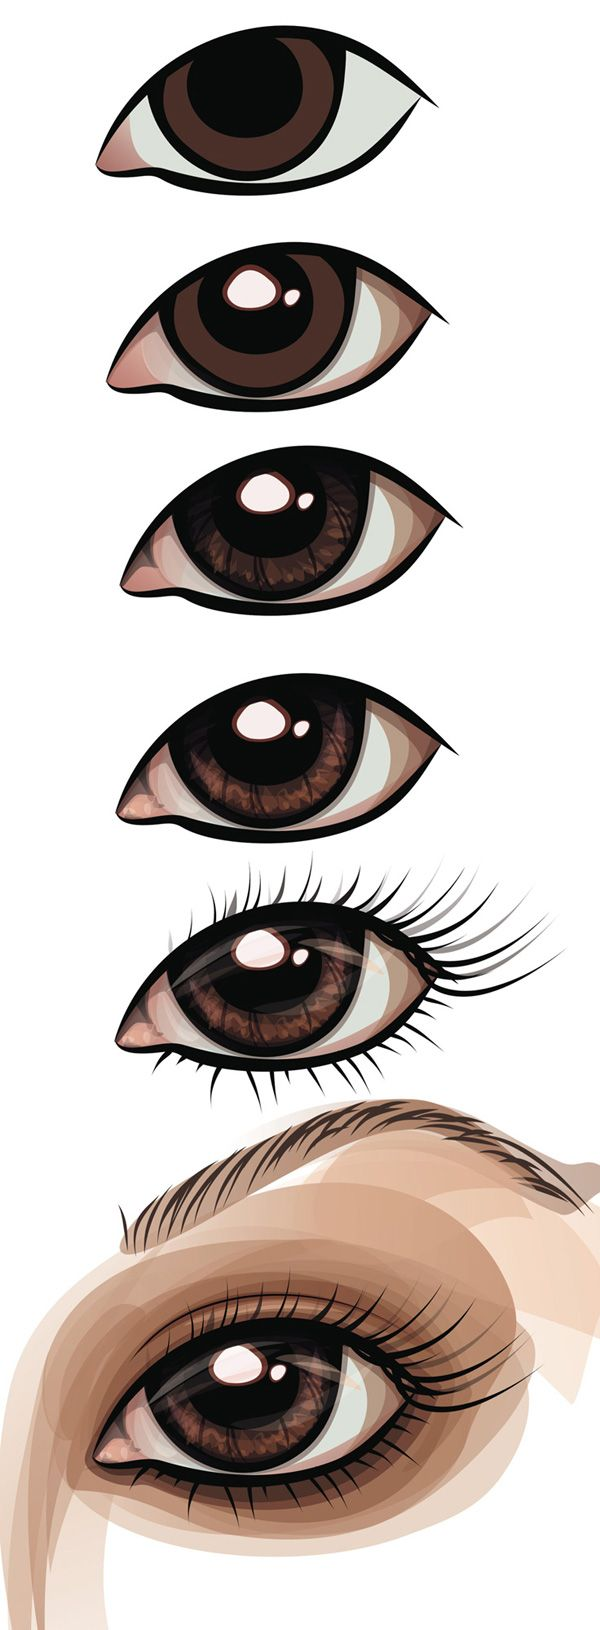 Poster design using coreldraw tutorial - Vector Art Digital Illustration Tutorial Of Drawing An Eye Always Great To See How Something Is Done In Illustrator The Eye Is Extremely Detailed And